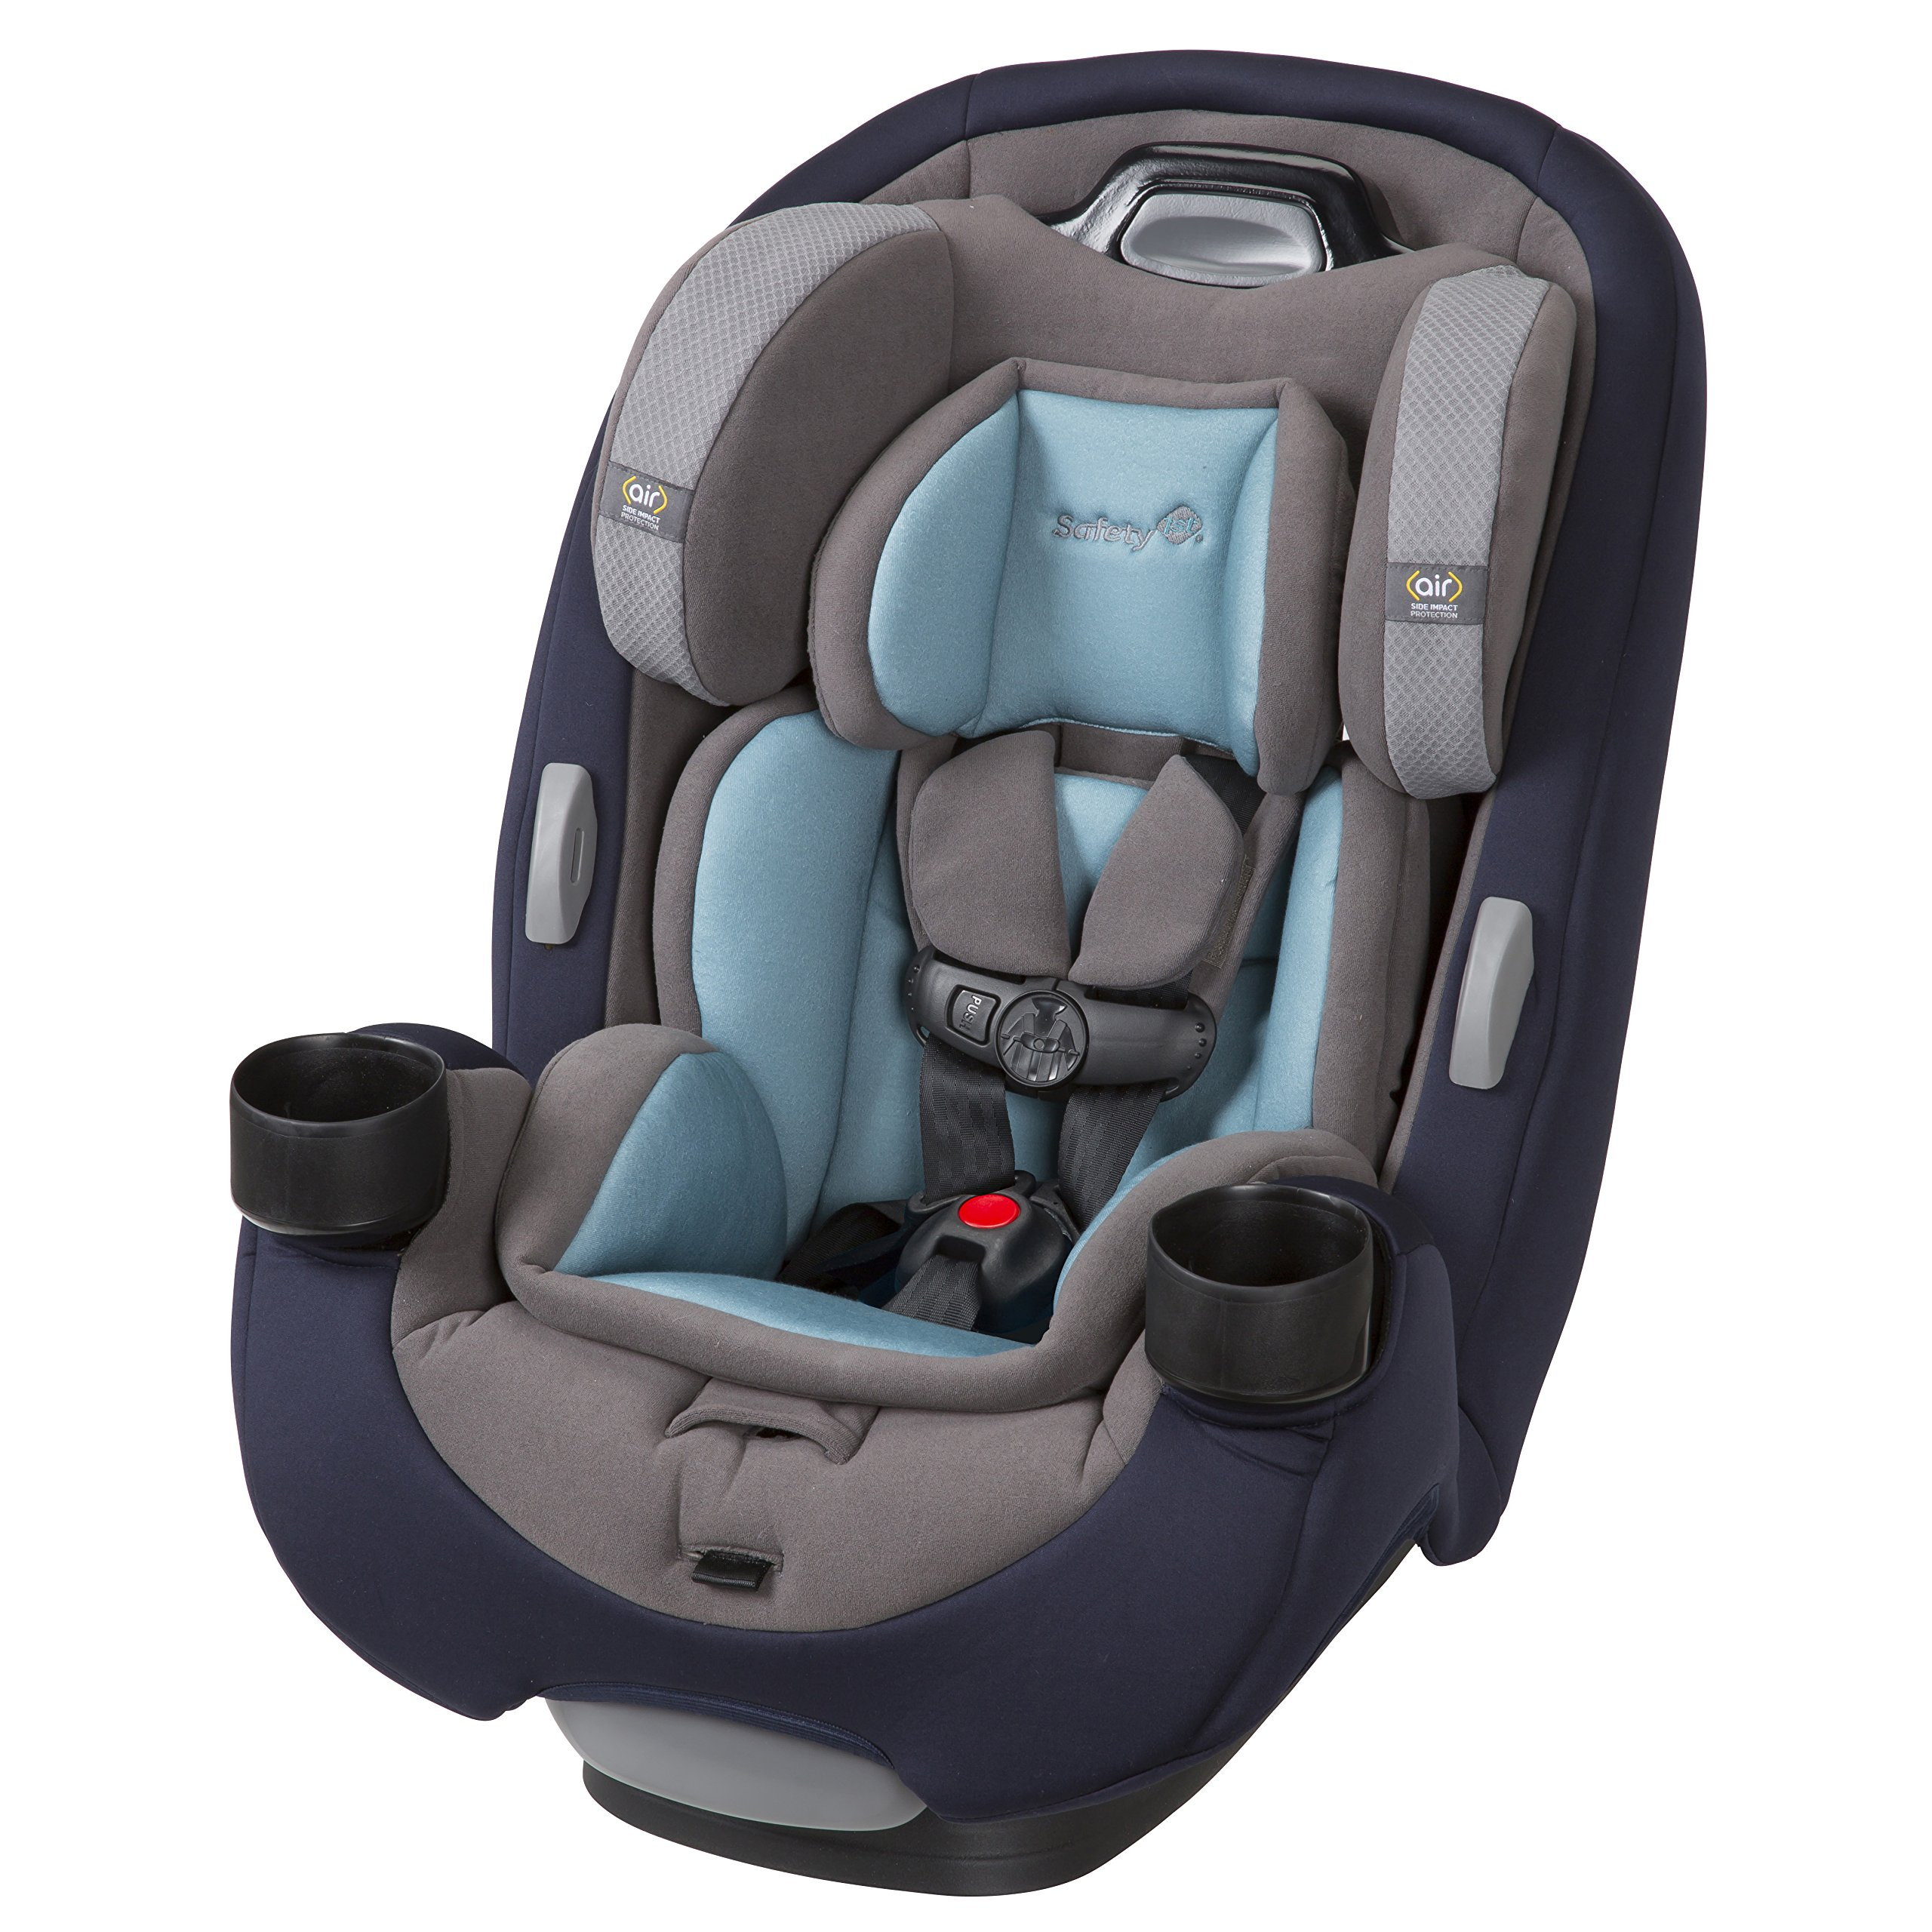 Amazon.com : Safety 1st Ultramax Air 360 4-in-1 Convertible Car Seat